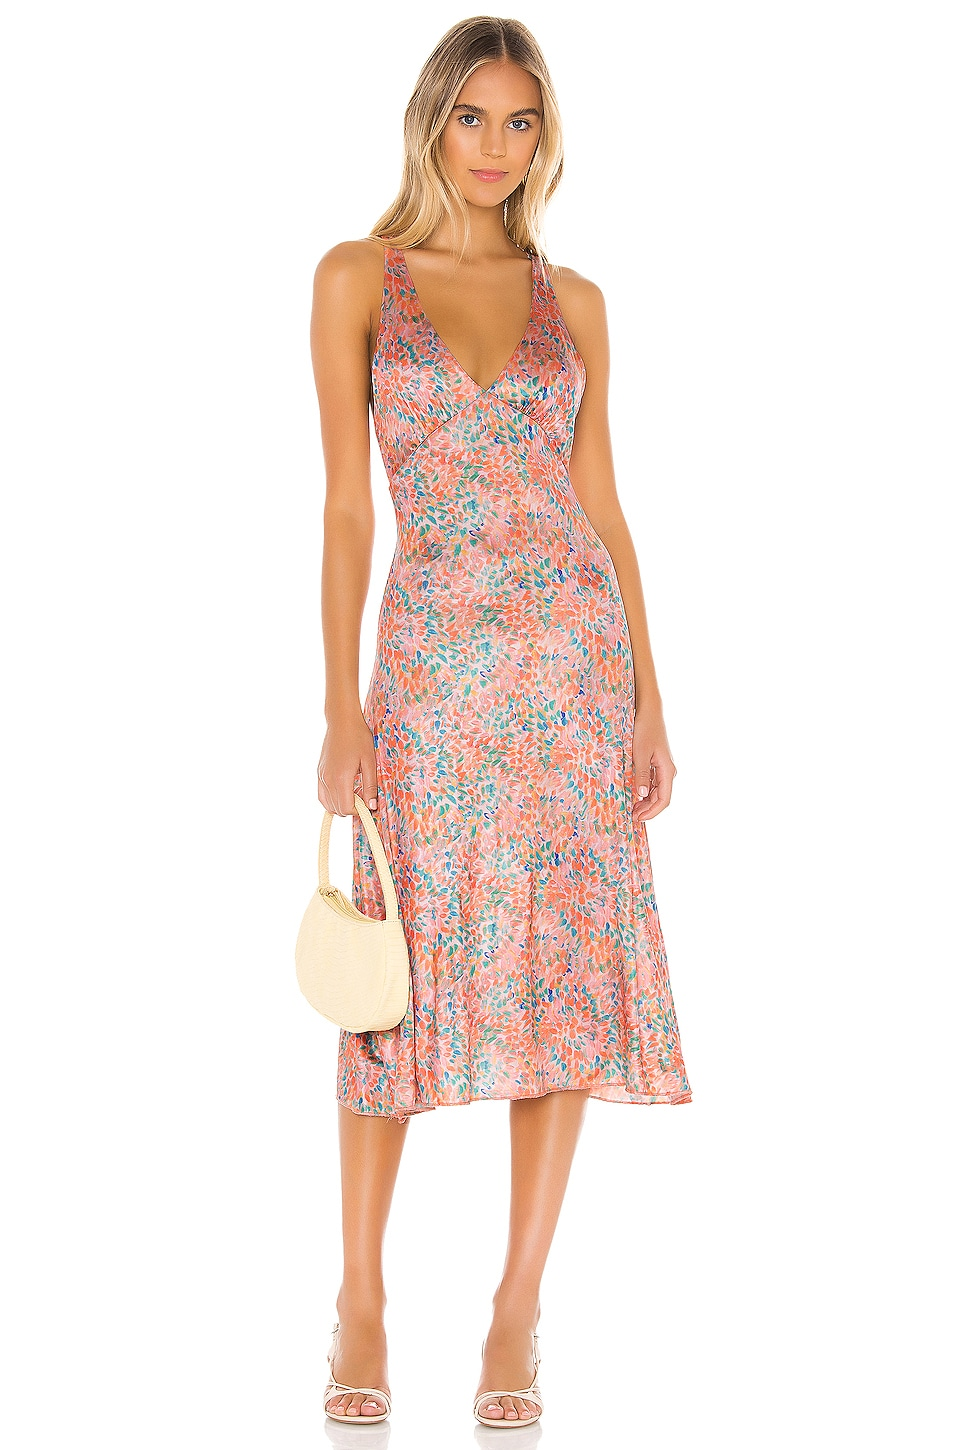 Nowhere To Be Slip Dress             Free People                                                                                                                                         Sale price:                                                                       CA$ 95.26                                                                                                  Previous price:                                                                       CA$ 139.34 5